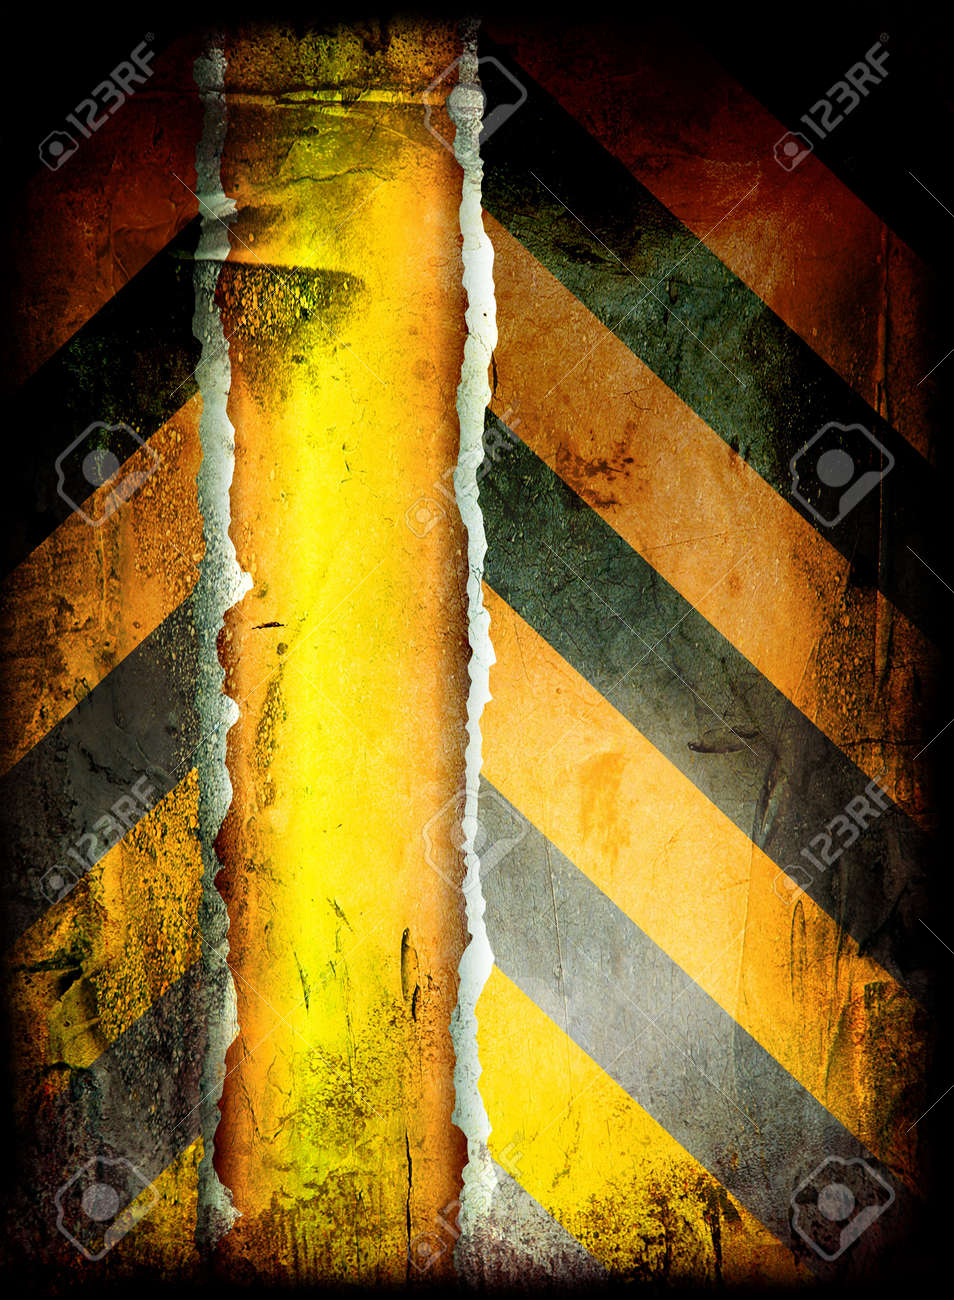 grunge warning background with room to add your own copy Stock Photo - 3804320